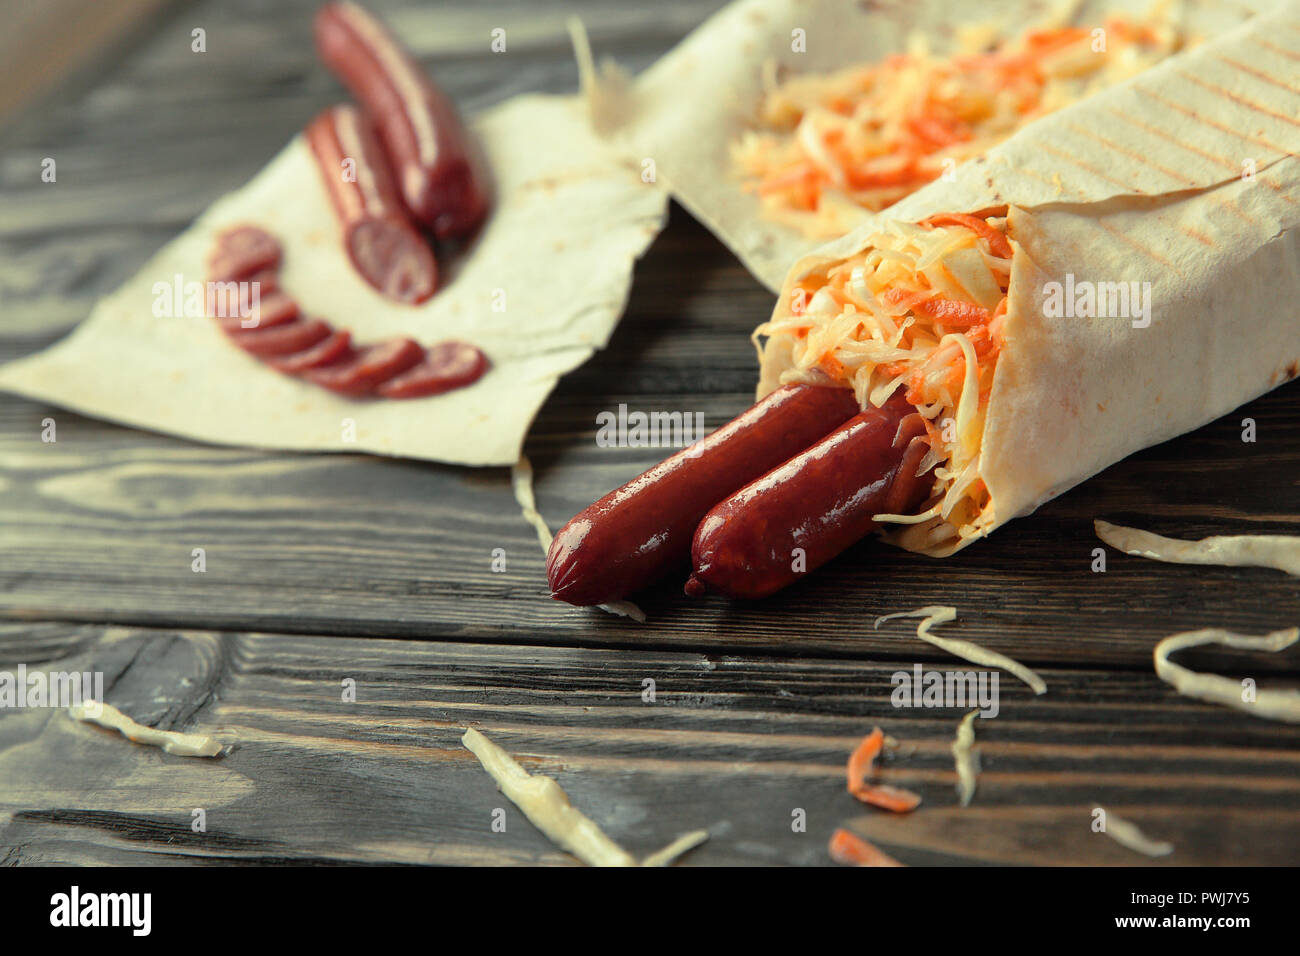 sliced sausage for pita bread.photo with copy space - Stock Image